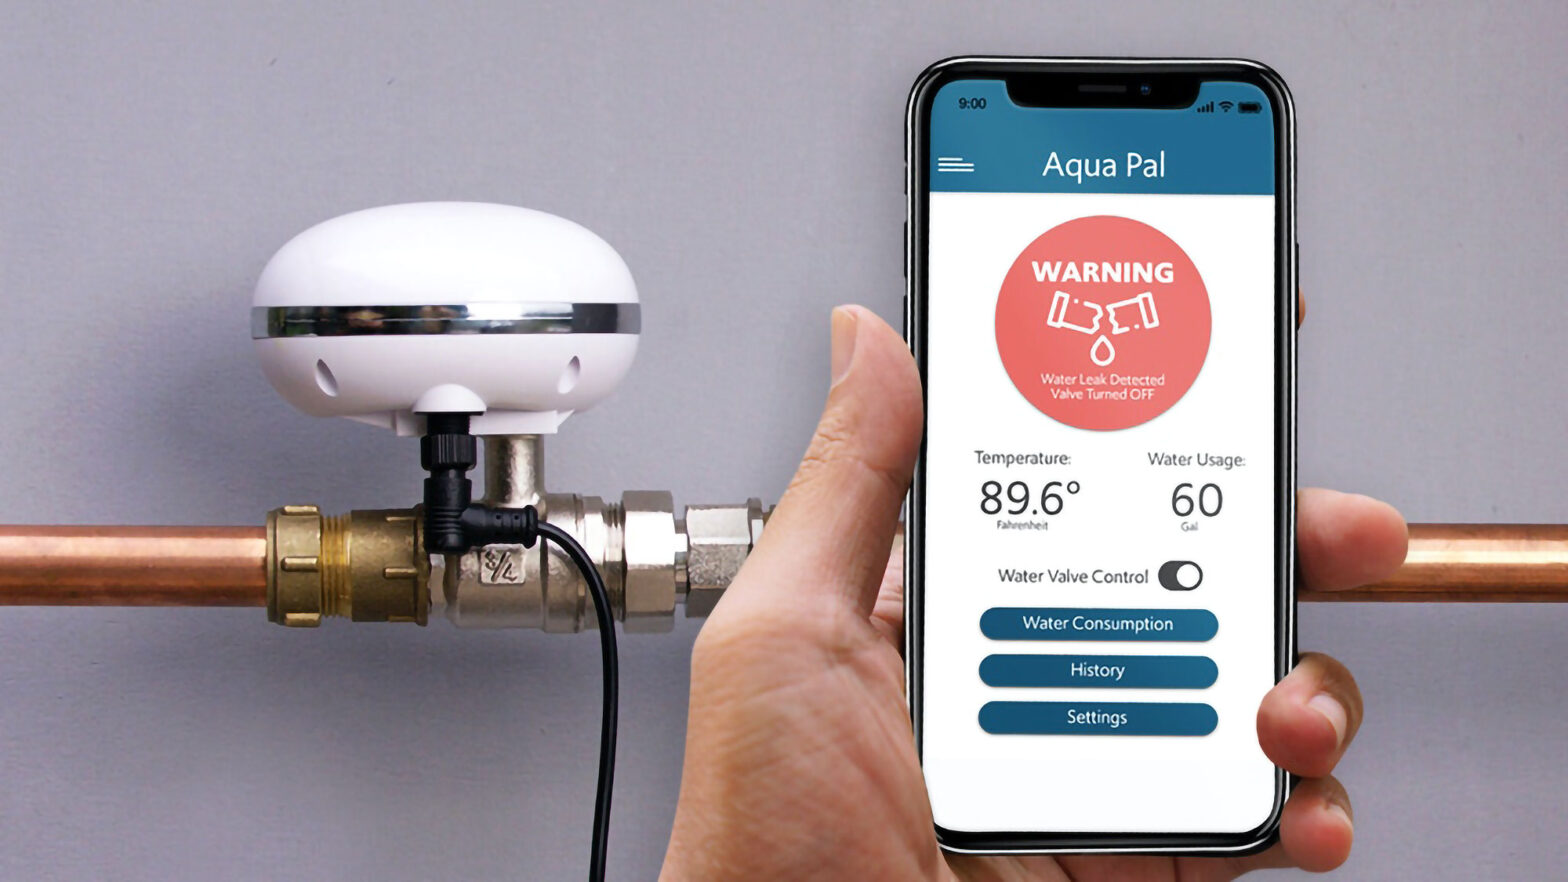 AquaPal Smart Water Monitoring and Control